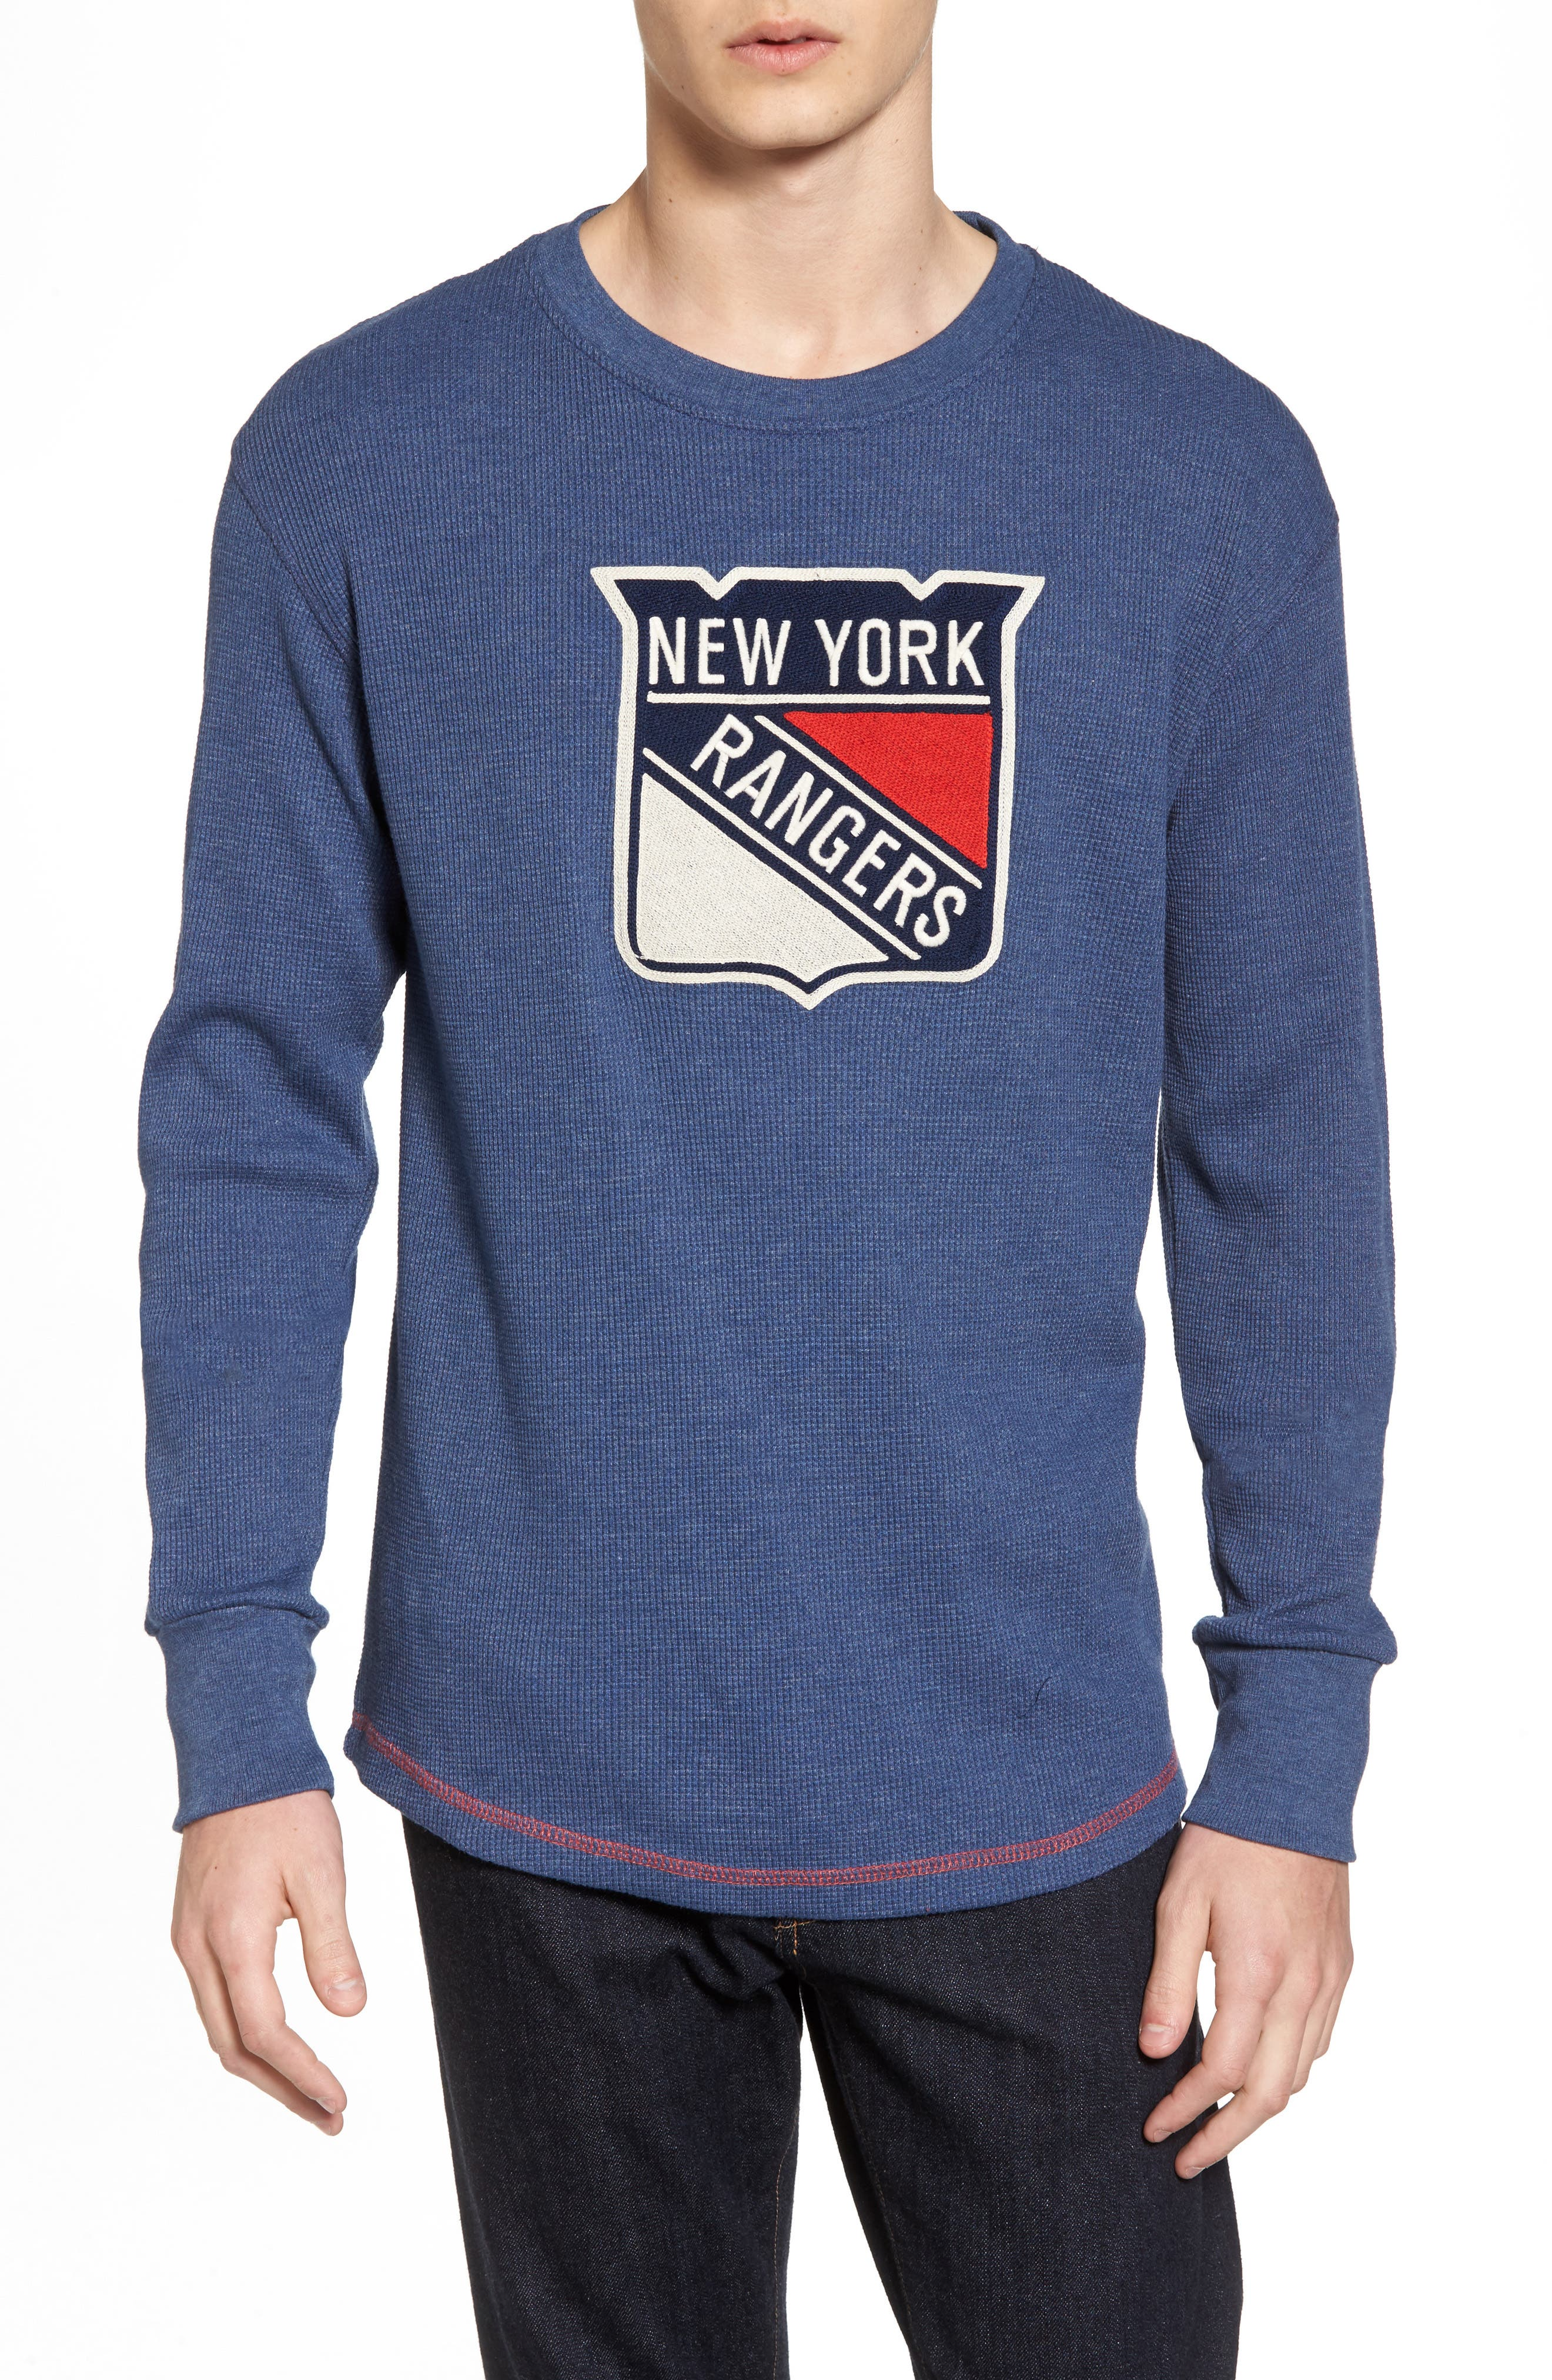 New York Rangers Embroidered Long Sleeve Thermal Shirt,                         Main,                         color, 410